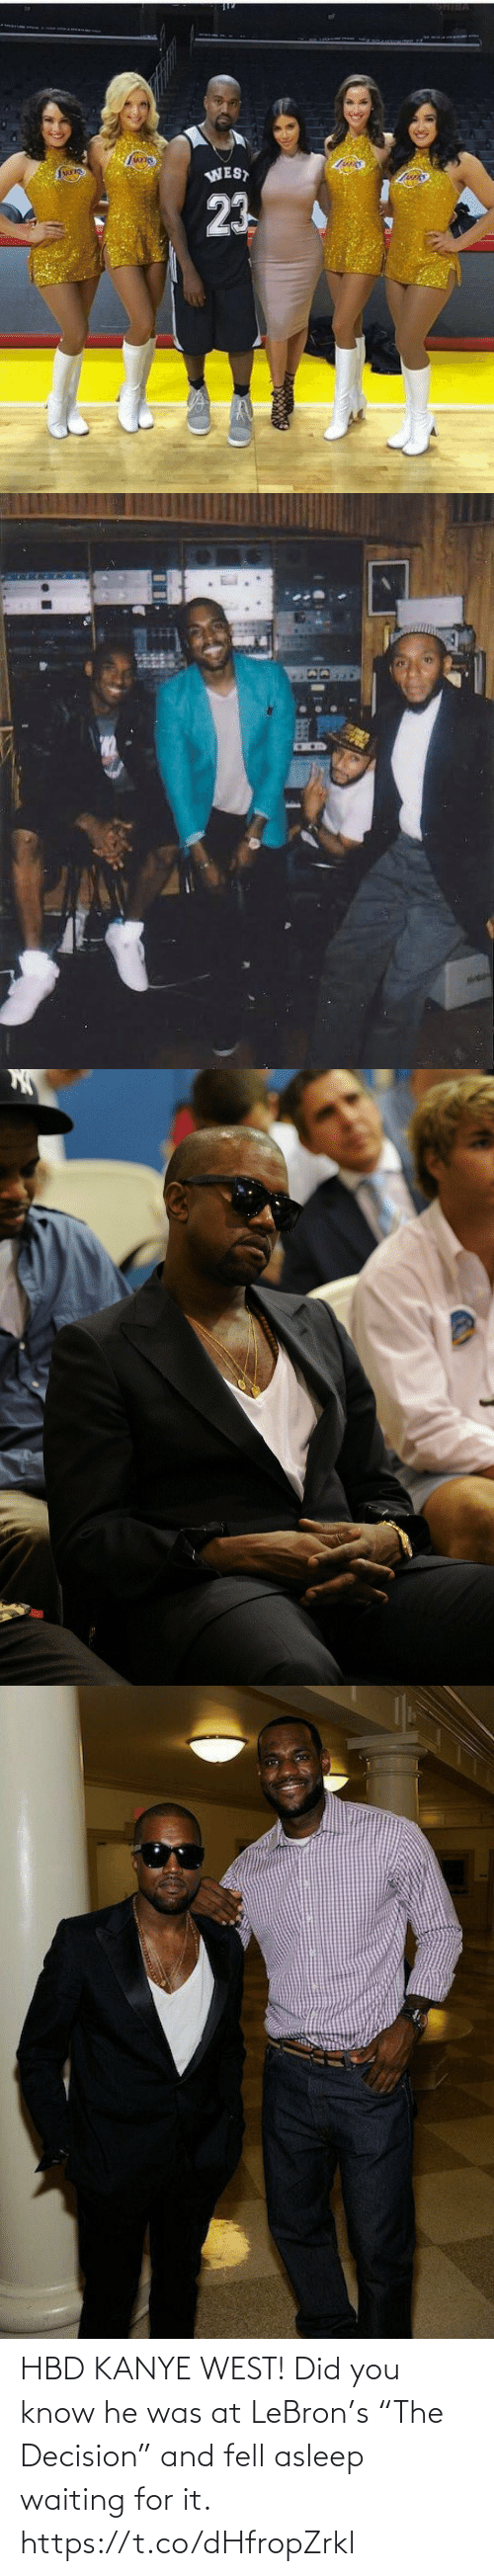 "did: HBD KANYE WEST! Did you know he was at LeBron's ""The Decision"" and fell asleep waiting for it. https://t.co/dHfropZrkl"